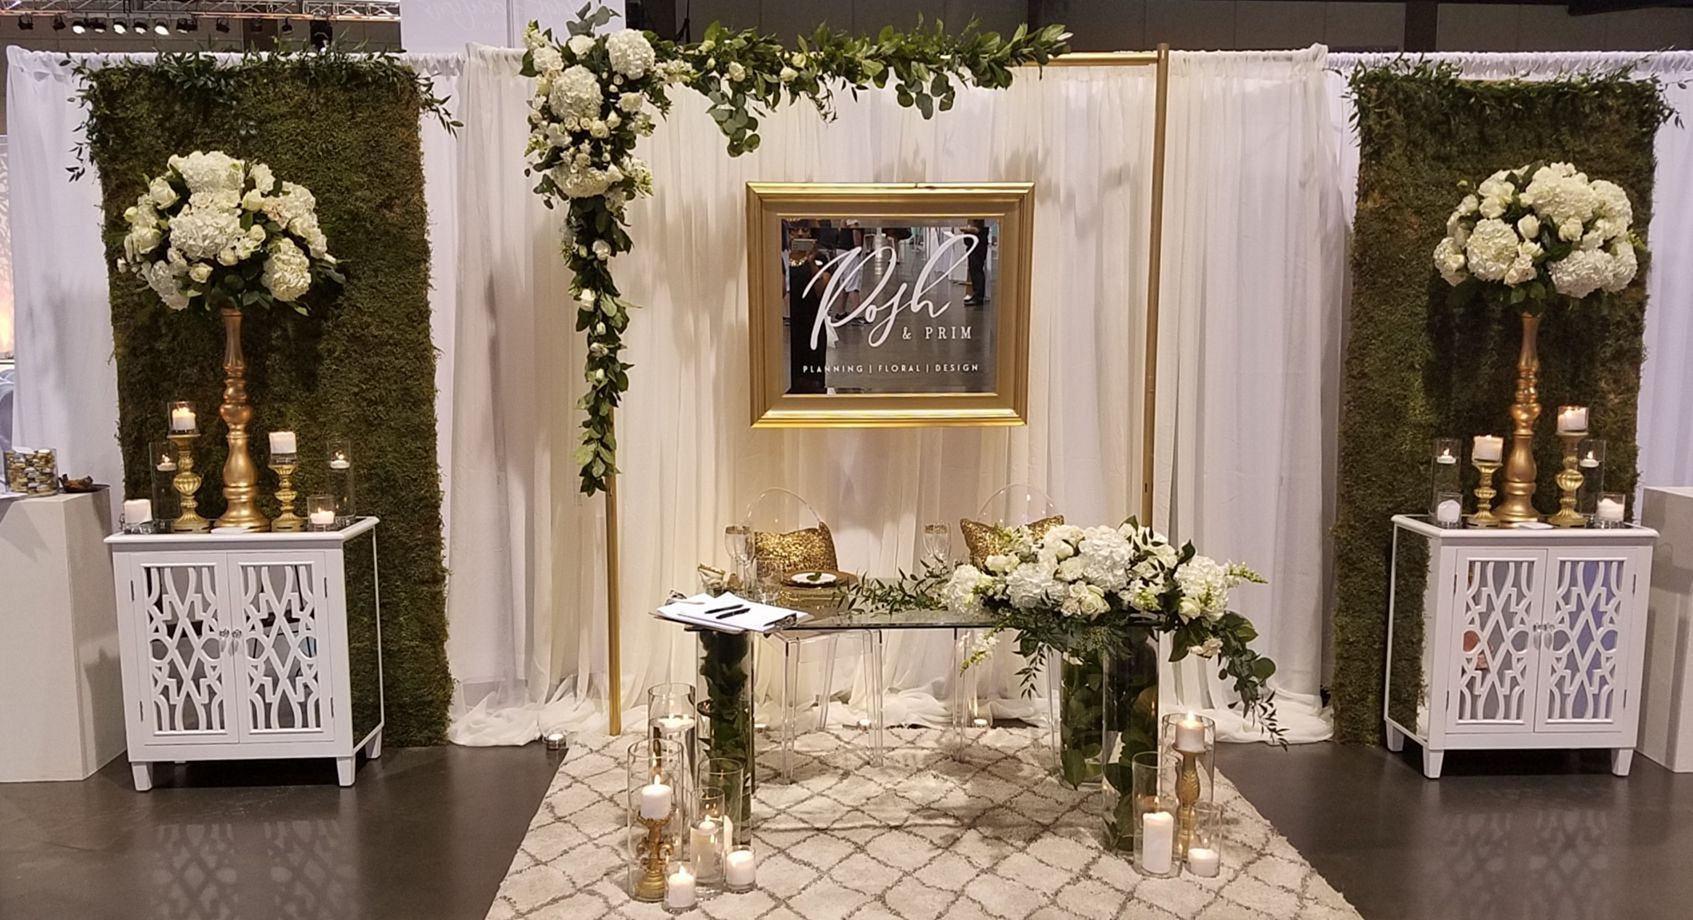 18 Amazing Photo Booth Inspiration For Christmas Wedding Bridal Show Booths Wedding Vendors Booth Wedding Show Booth